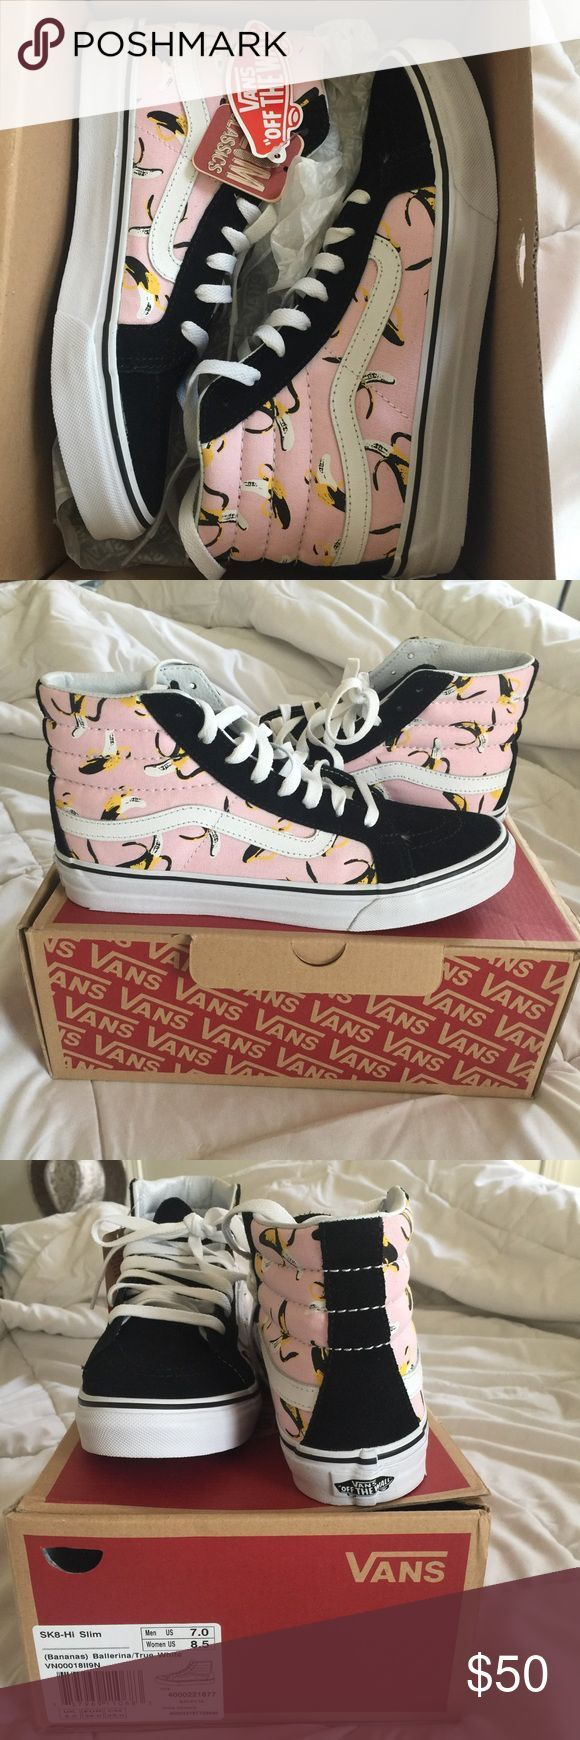 Vans banana high tops Brand new size 8 women size 7 men Vans Shoes Sneakers - kinds of mens shoes, mens fashion shoes, mens dress sandals shoes